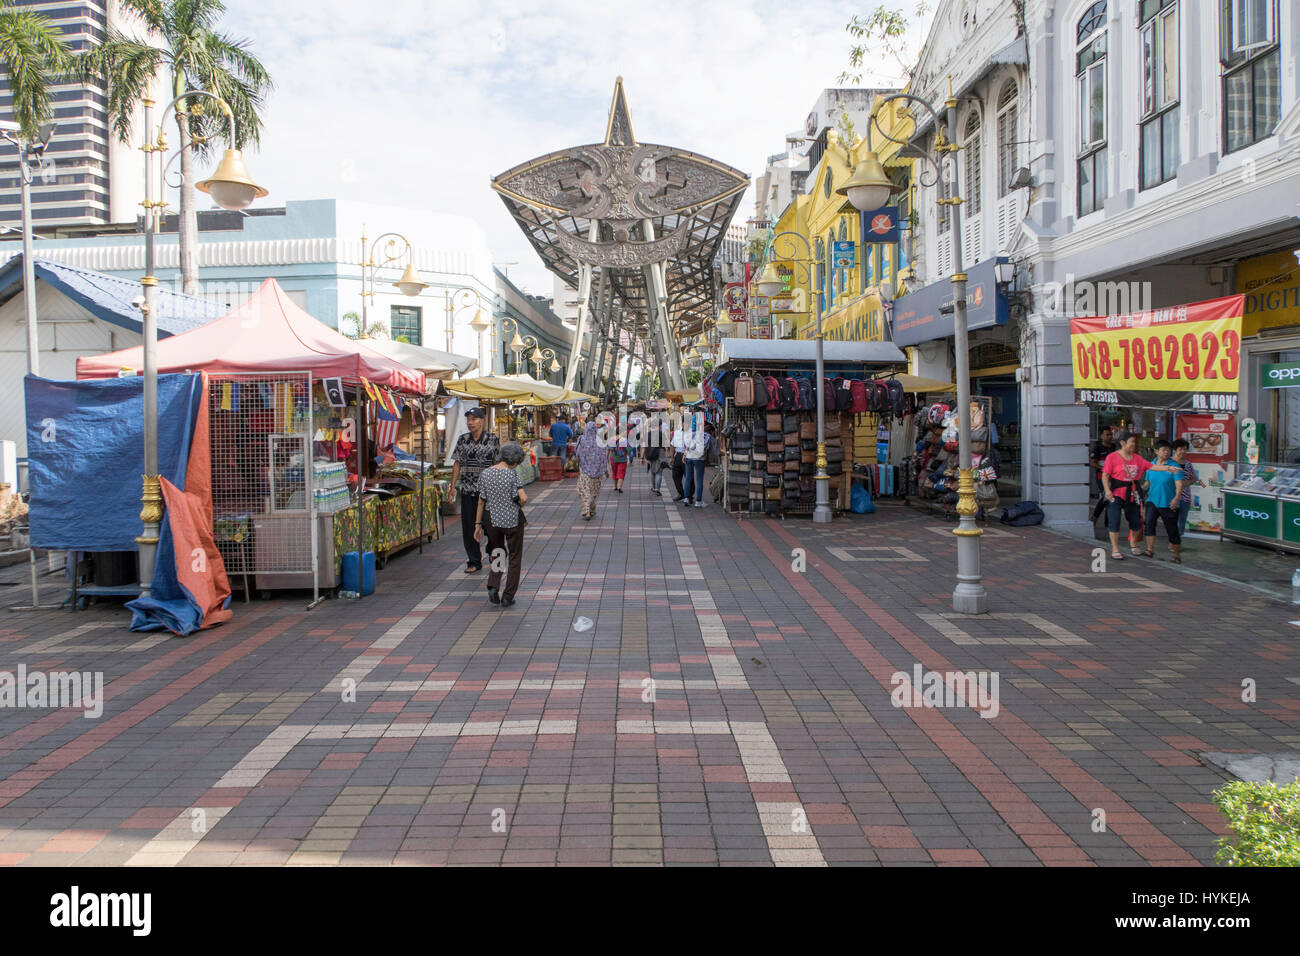 Outside the Central Market in Kuala Lumpur, Malaysia - Stock Image